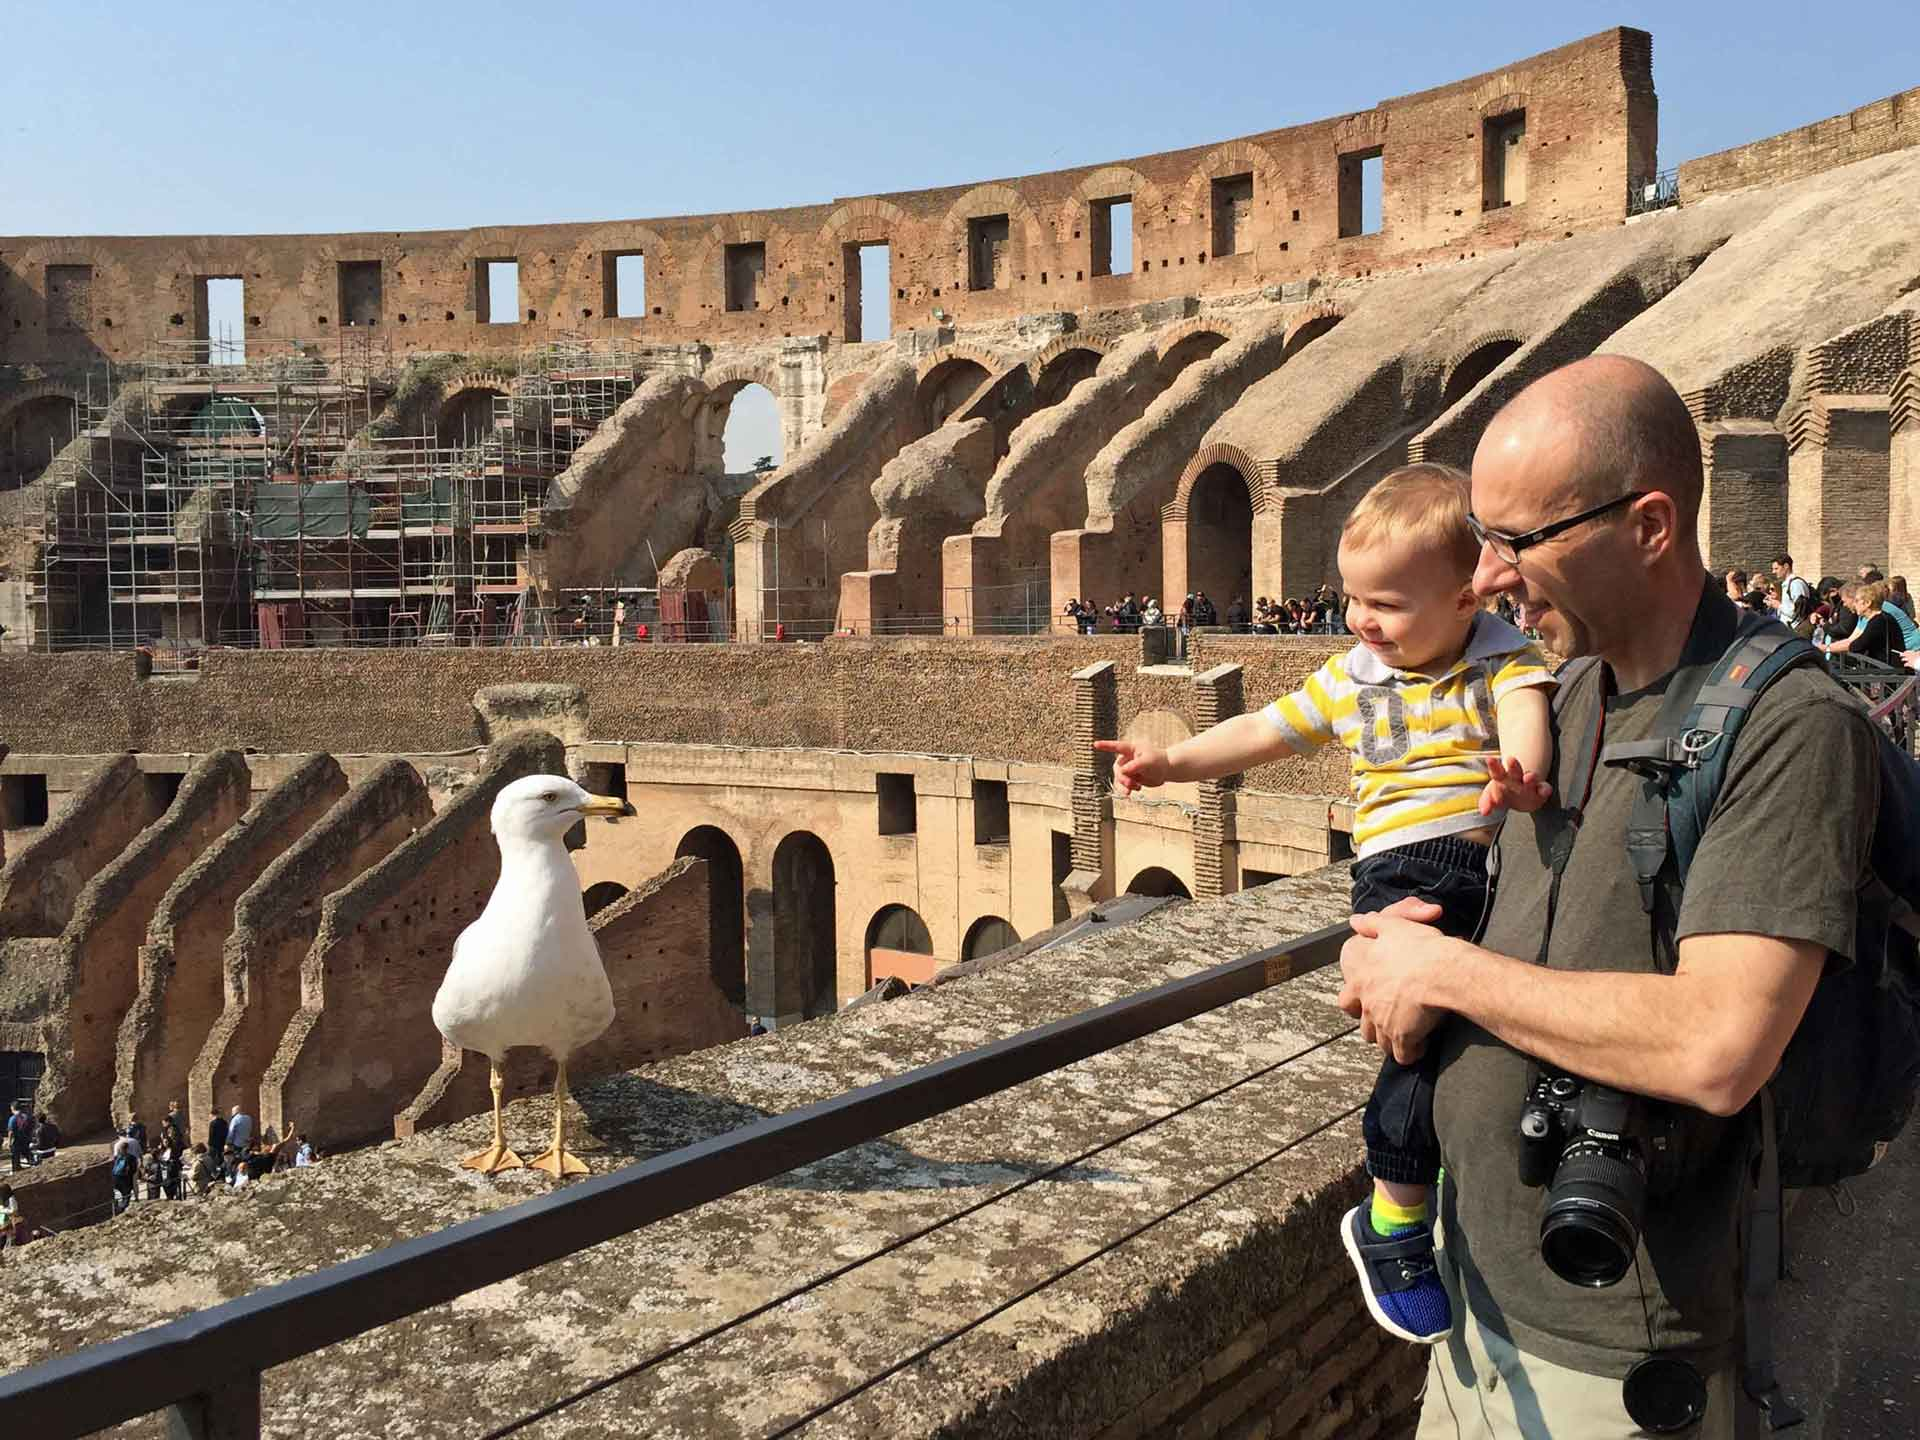 Colosseum in Rome Italy with baby